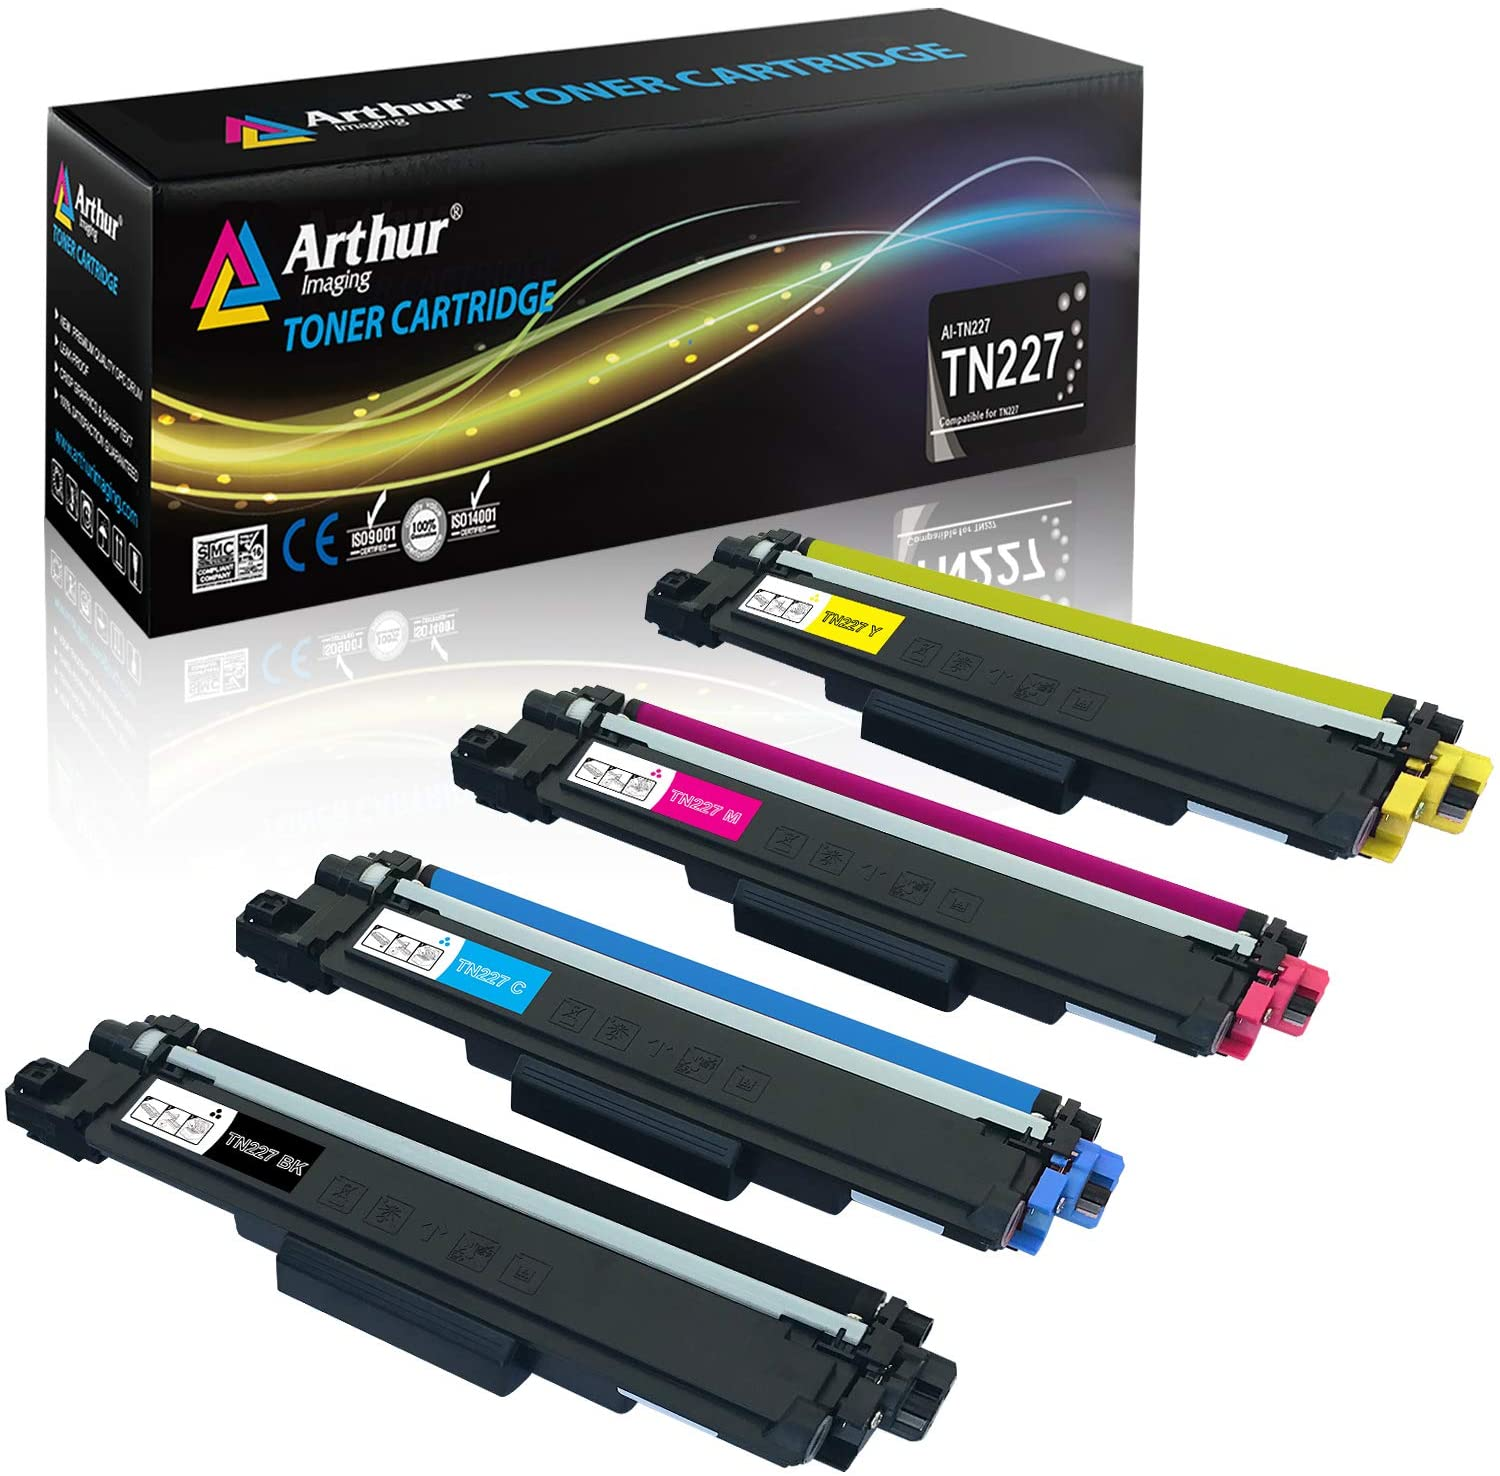 Arthur Imaging Compatible Toner Cartridges Replacement for Brother TN227 (Black, Cyan, Yellow, Magenta, 4-pack)